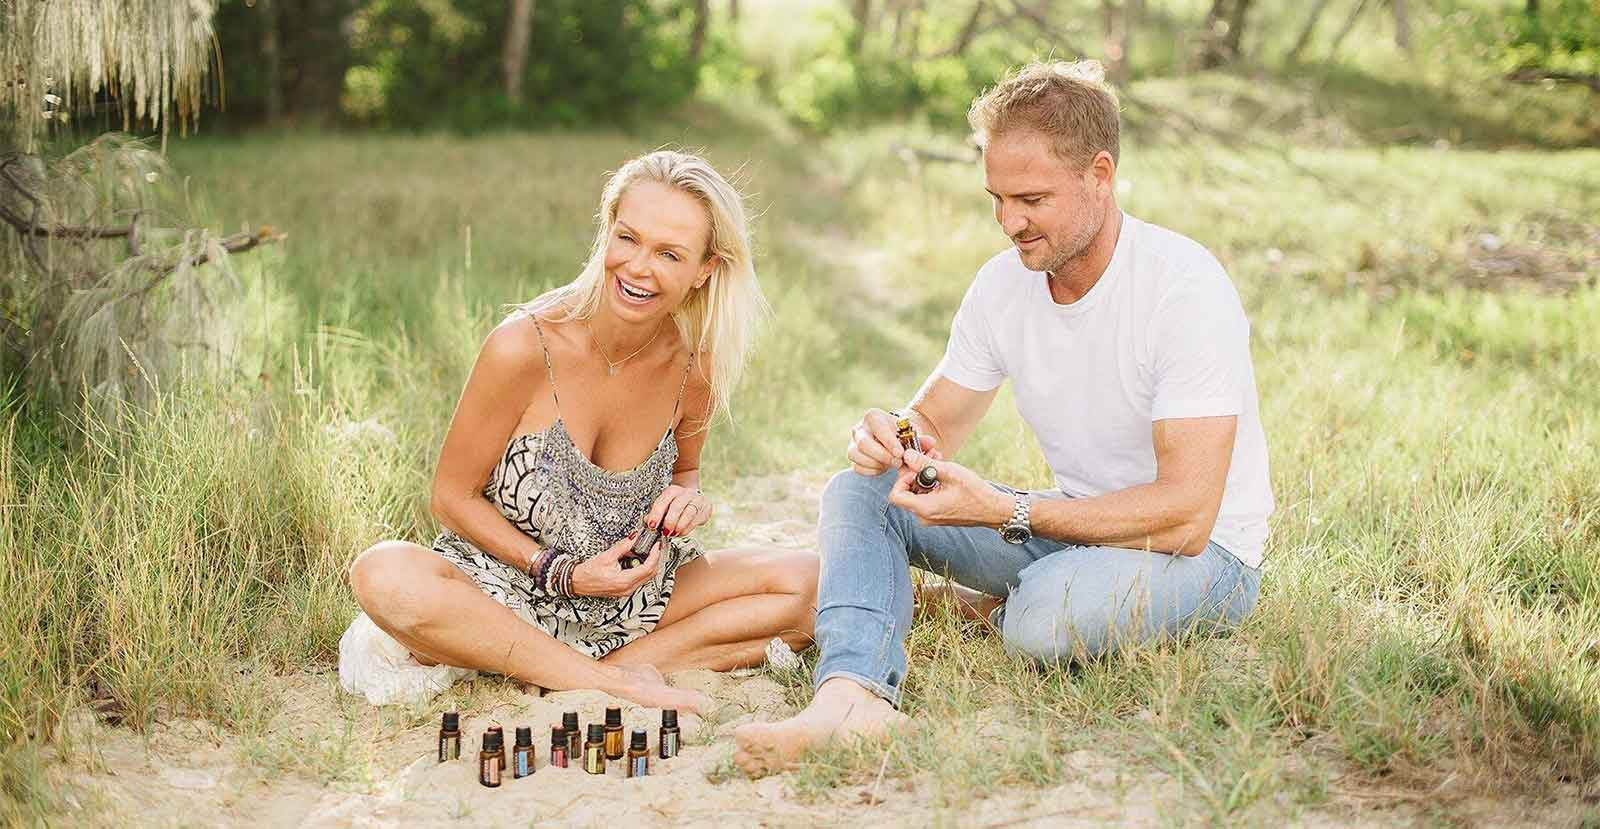 Essential Oils for Self Care Lifestyle with dōTERRA Wholesale Account